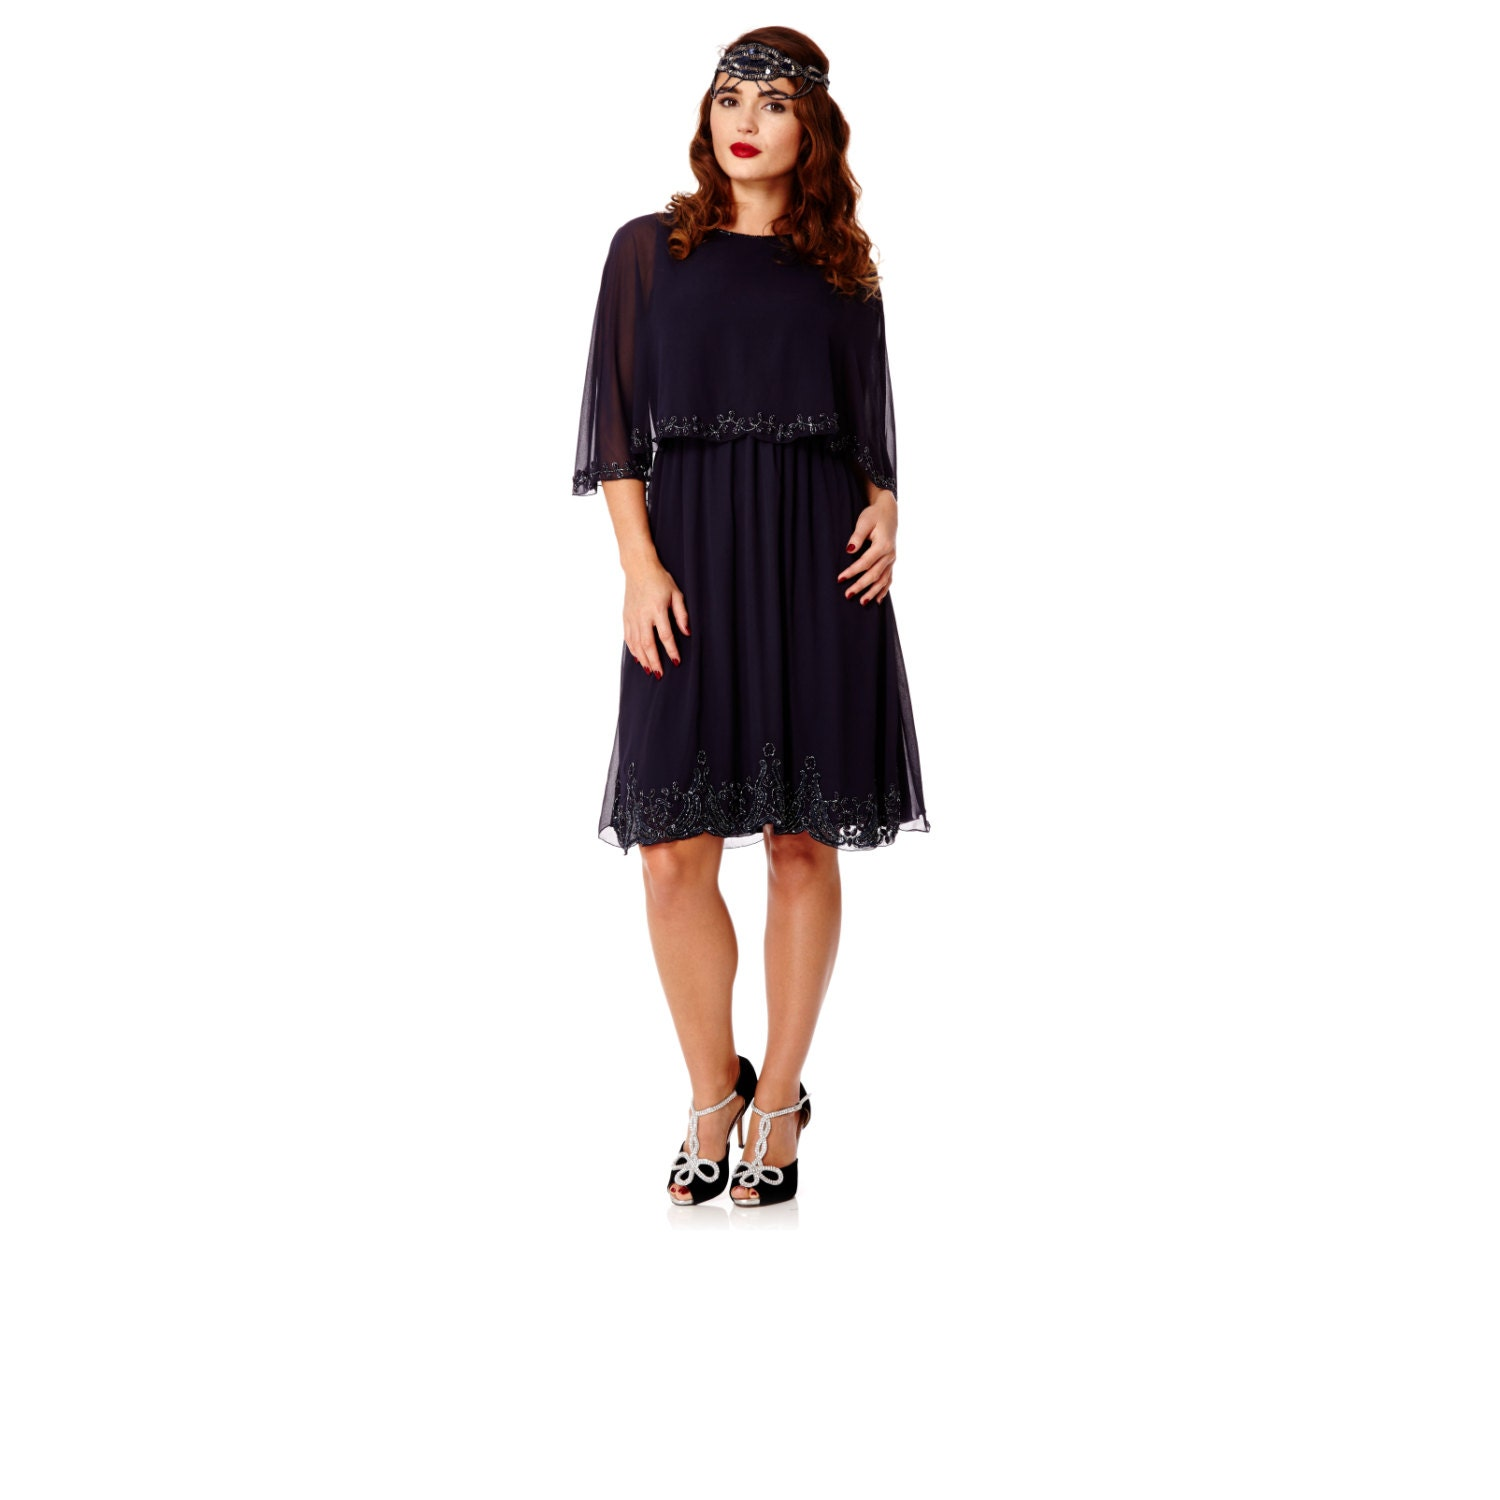 Plus Size Gloria Navy Blue Capelet Dress Vintage Inspired 1920s Flapper Great Gatsby Wedding